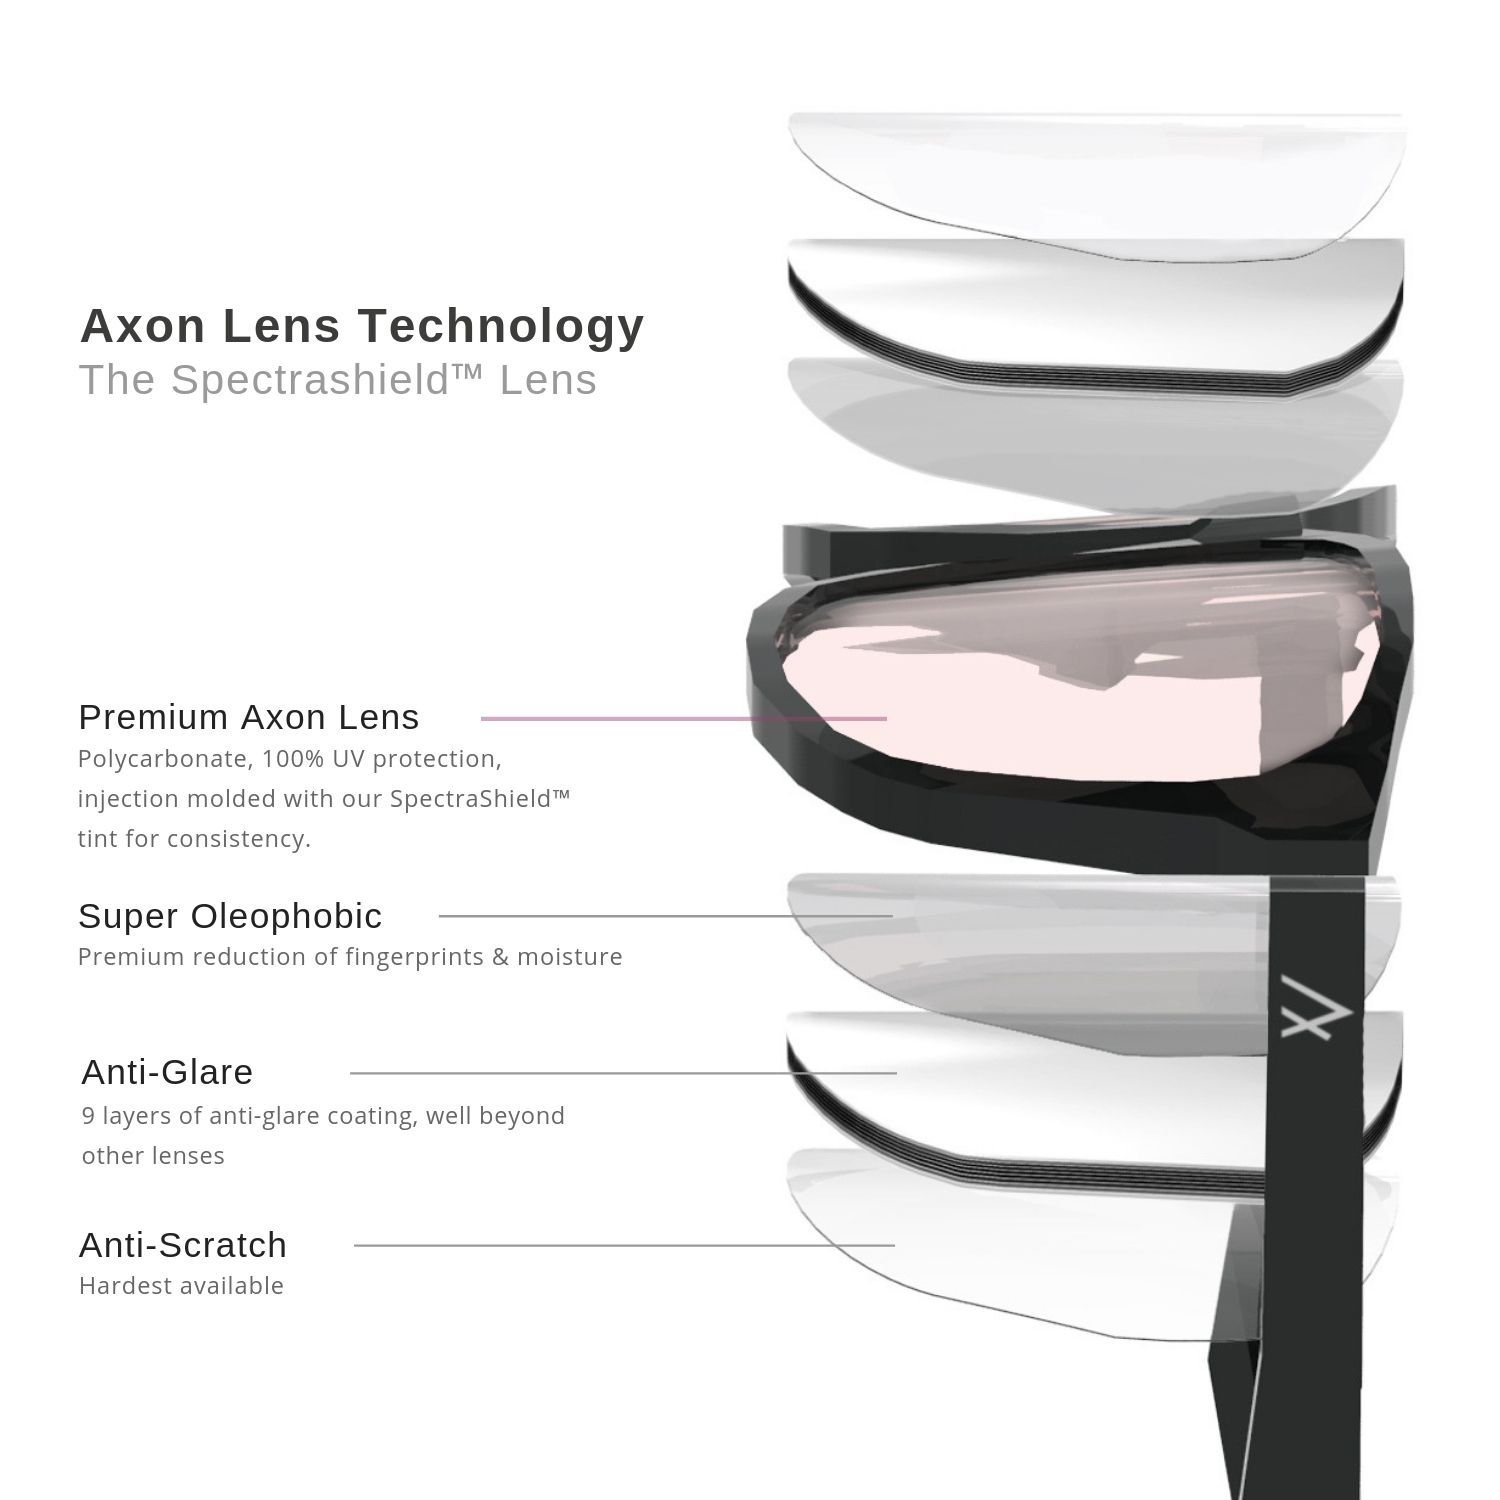 Axon Optics Migraine Lens Technology